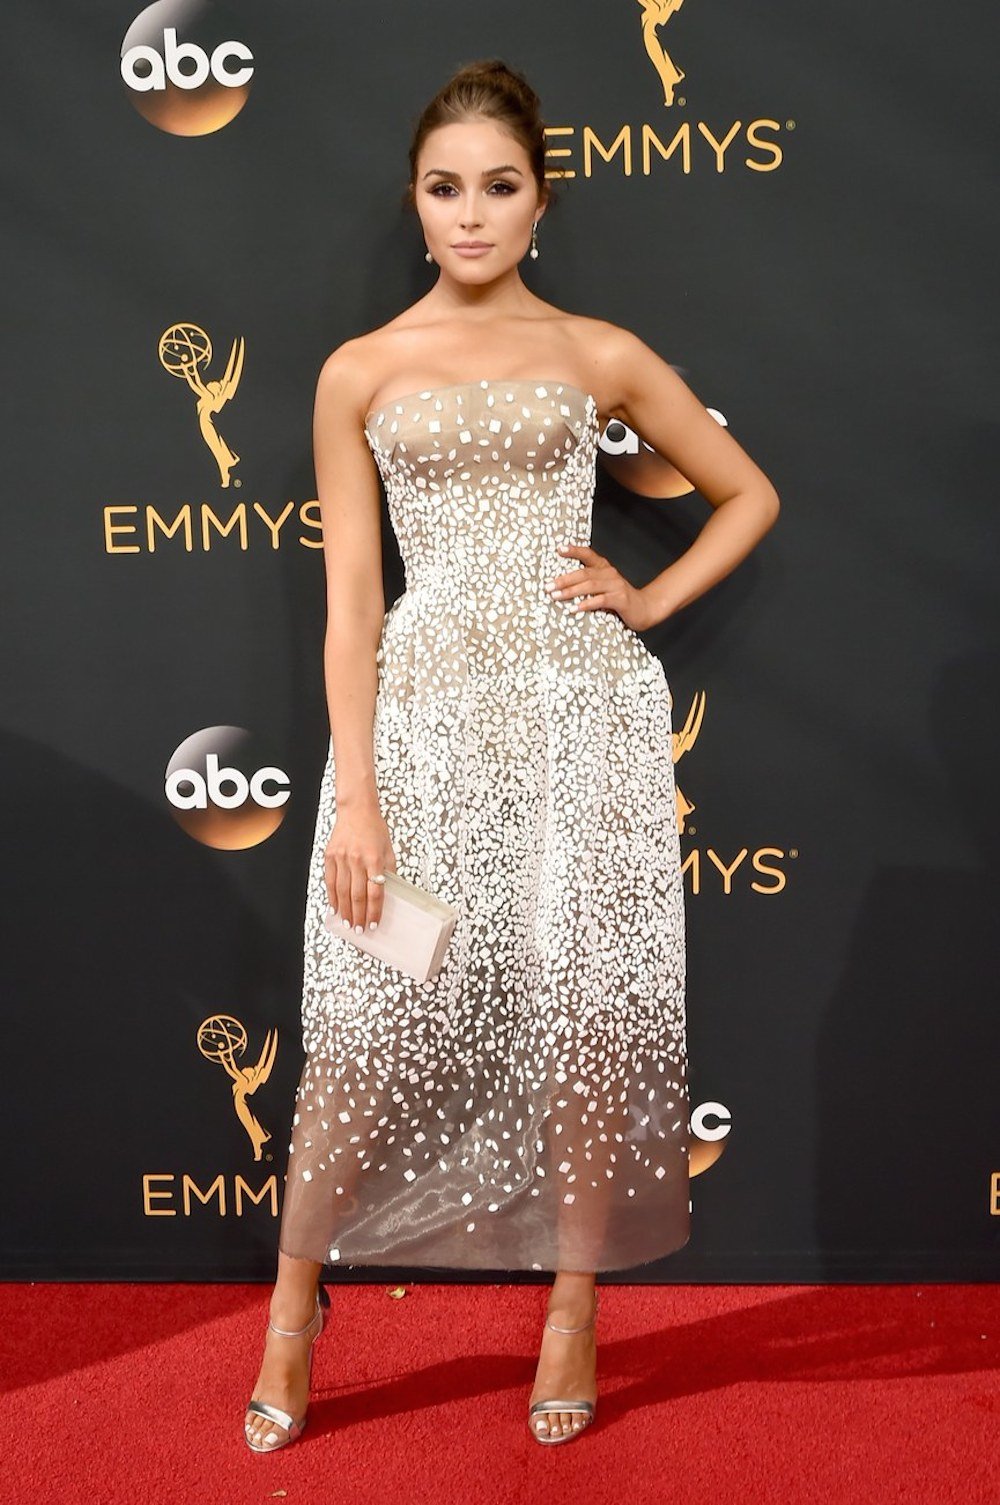 Olivia Culpo in Zac Posen at the 2016 Emmy Awards. Image courtesy of Patrick McMullen/Getty.